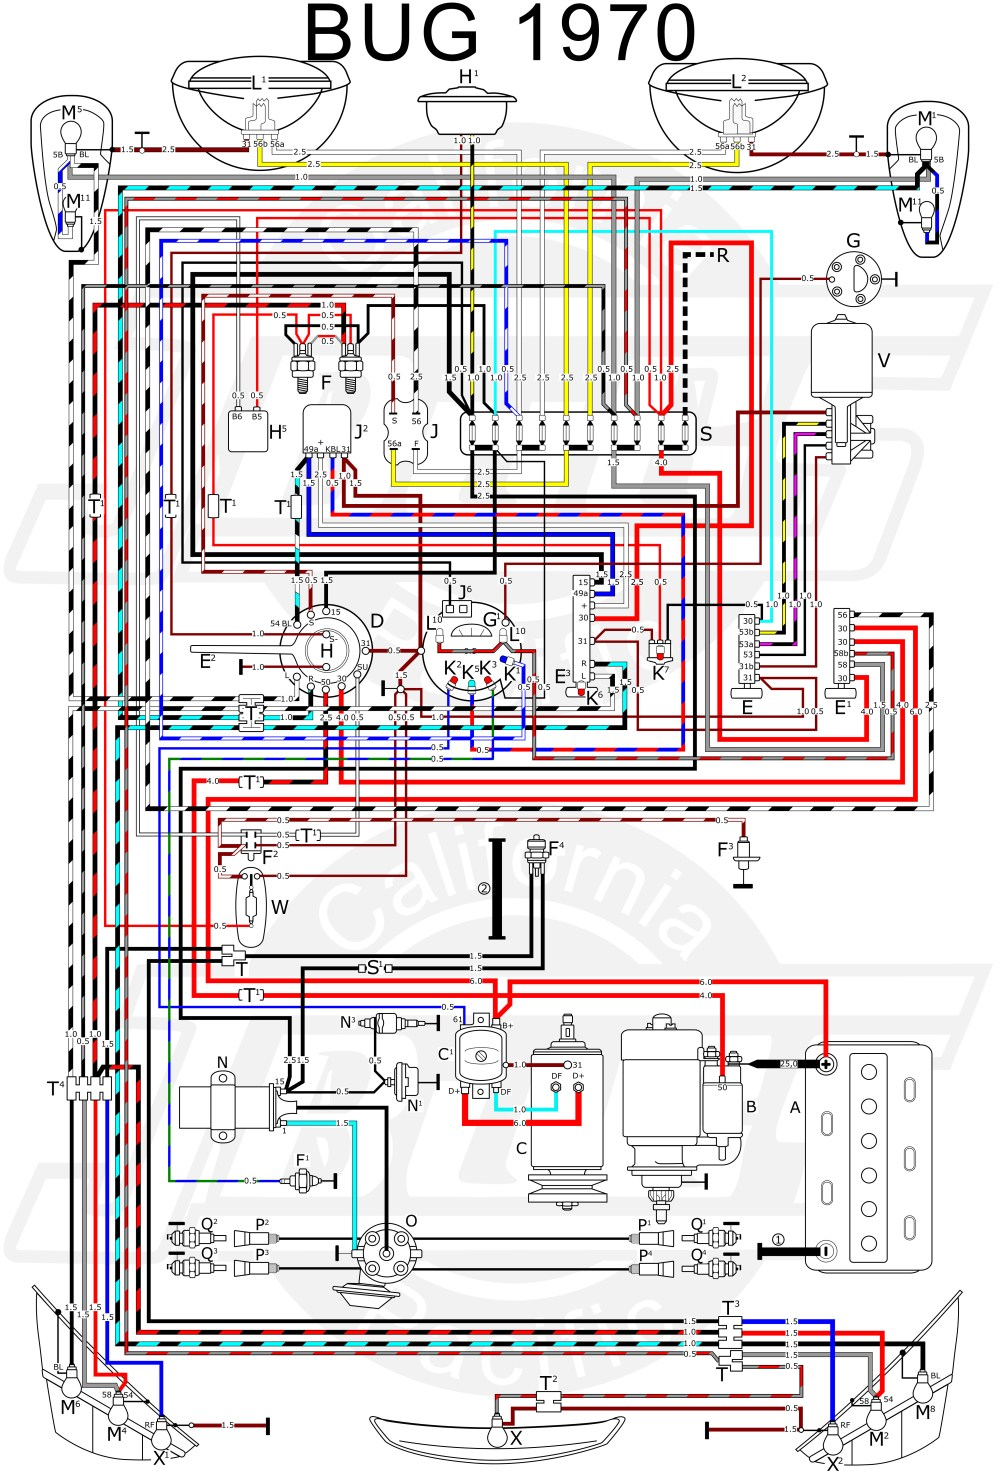 medium resolution of girardin bus wiring diagrams wire management u0026 wiring diagramcollins bus wiring diagrams wiring diagram advance